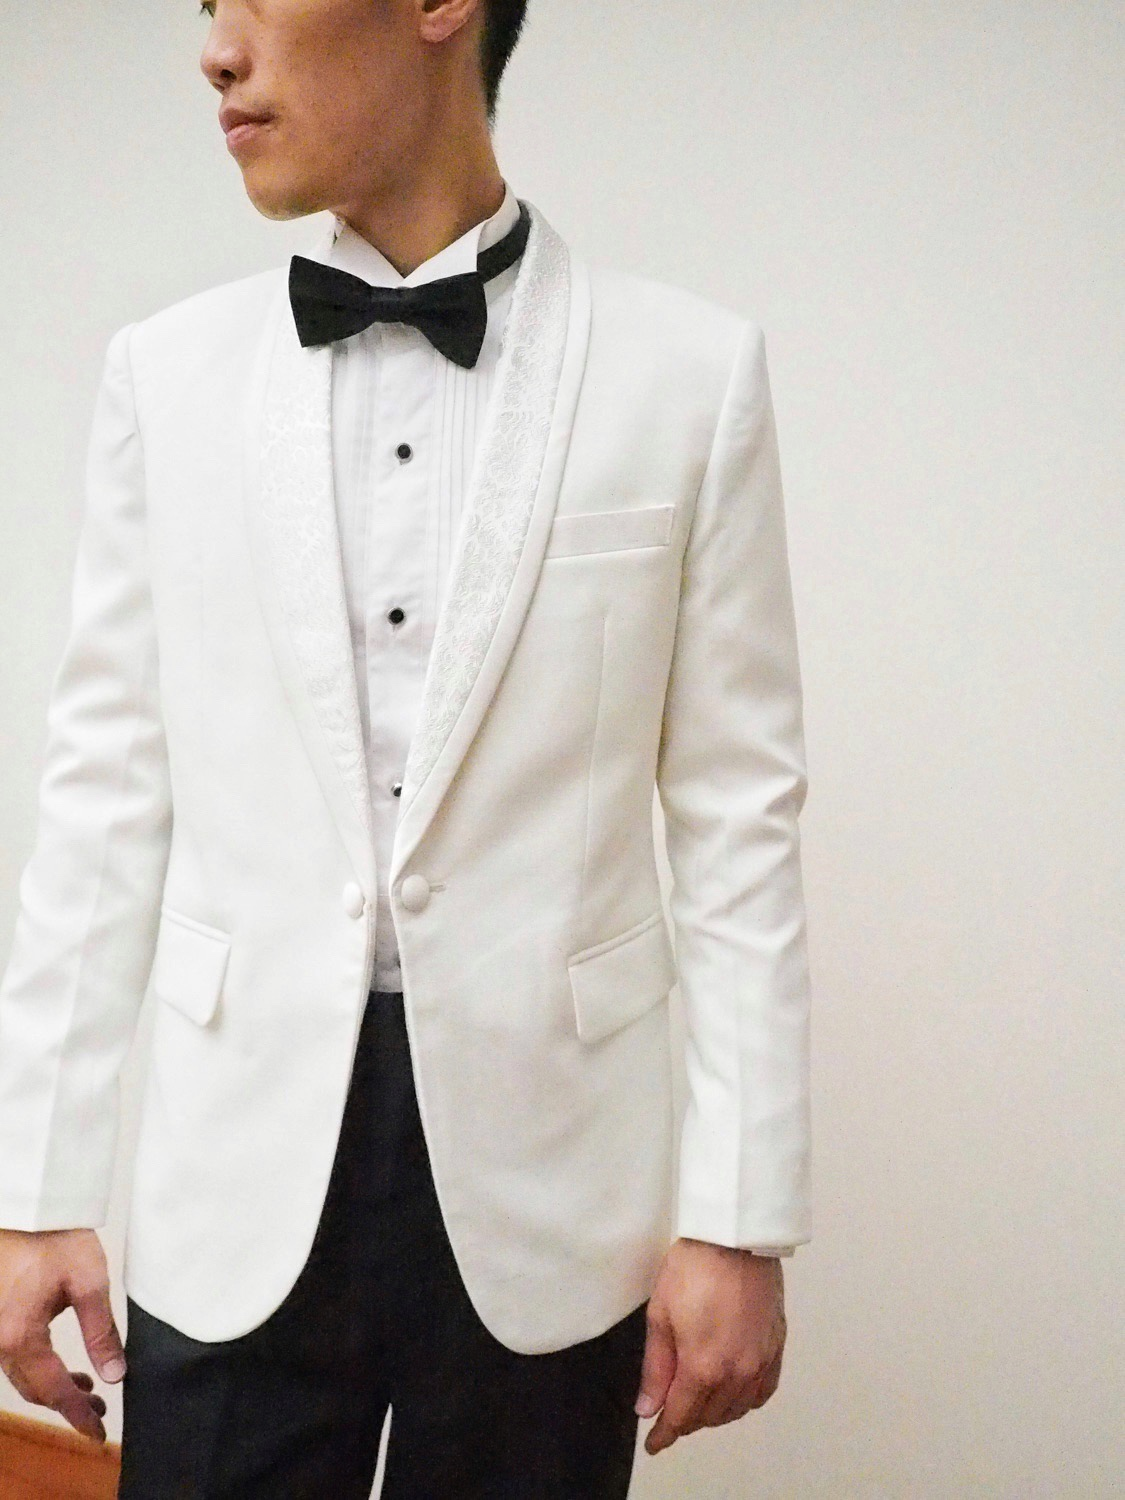 Jacquard fabric white suit by CCM Wedding